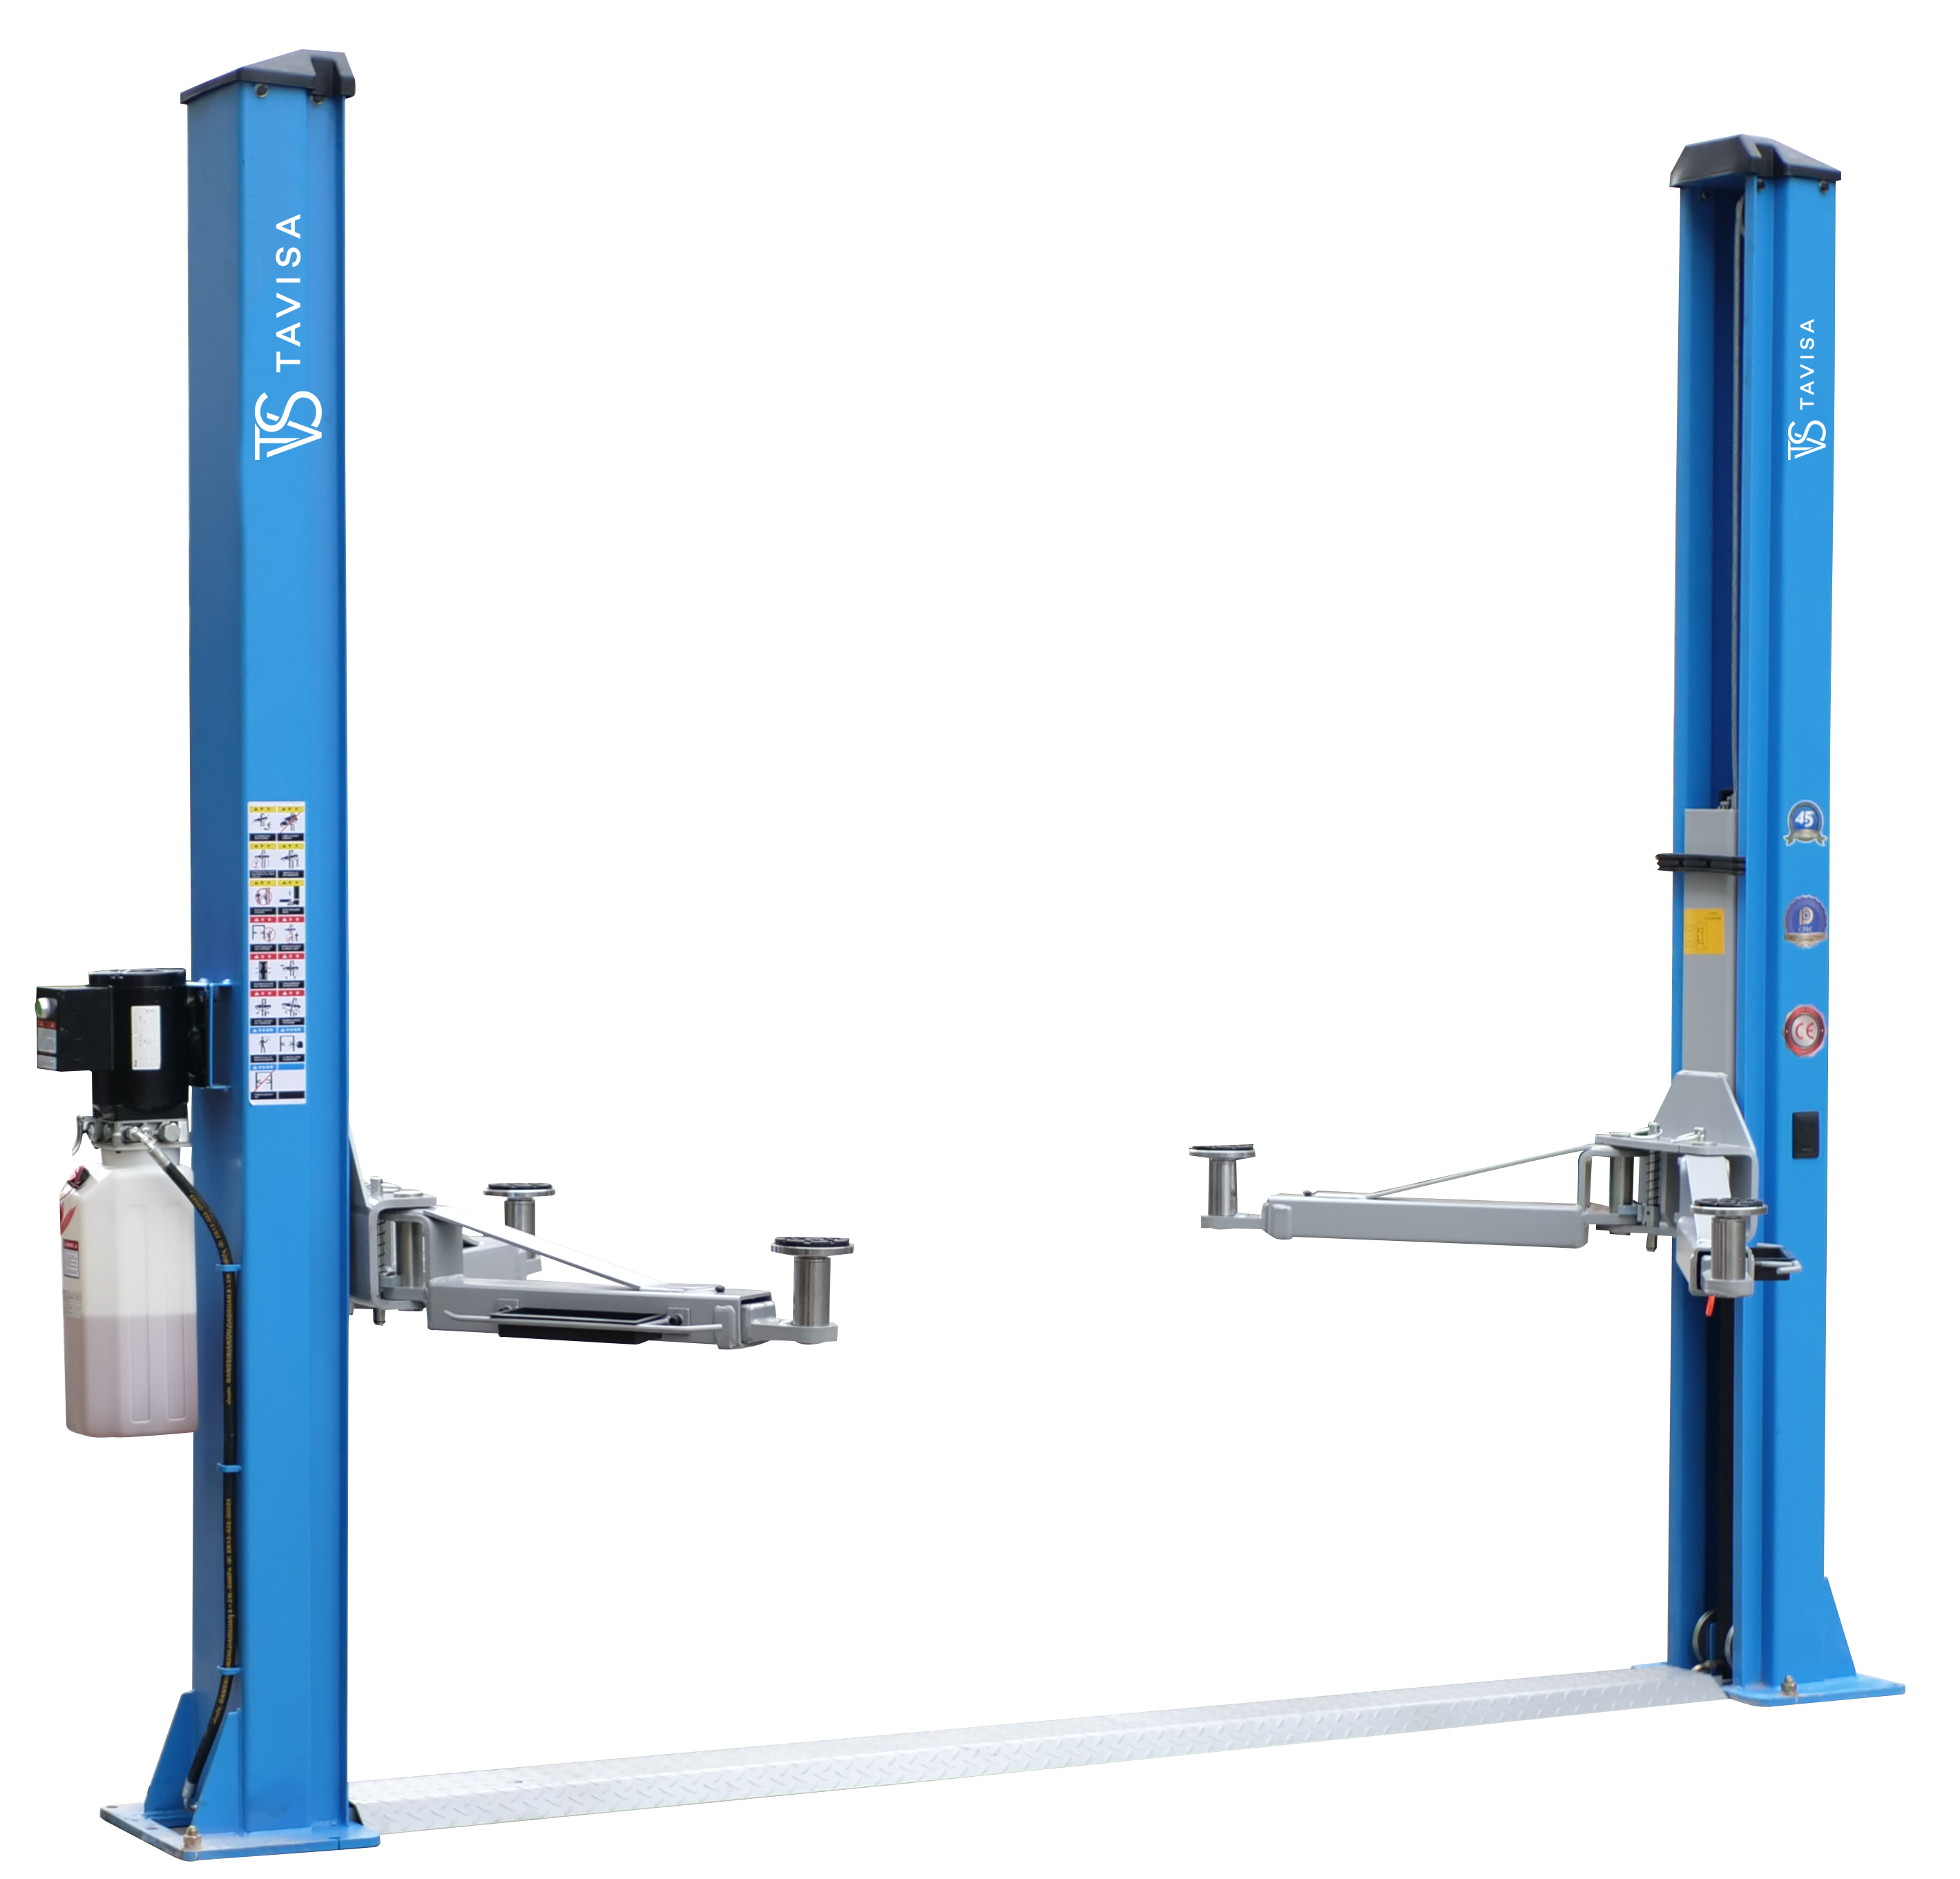 L-2-45D Electro-hydraulic two post lift with mechanical lock release